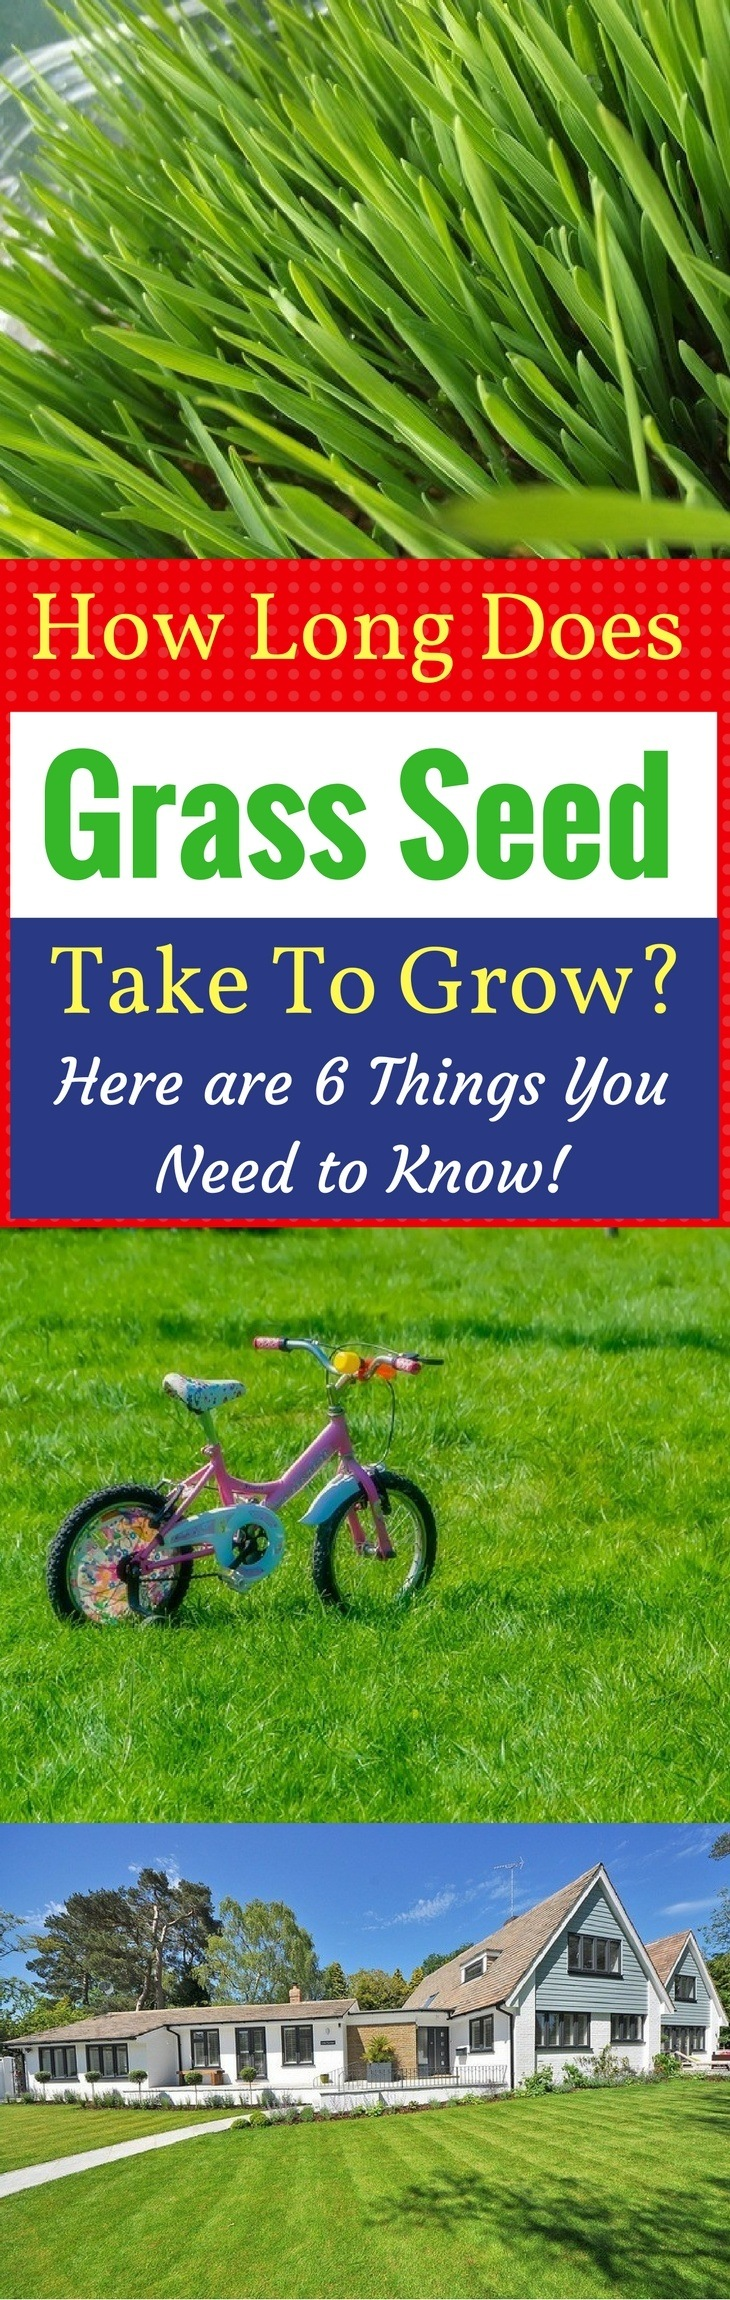 Encouraging Erosion Control Ever Wonder How Long Does Grass Seed Take To Here Are Things You How Long Does Grass Seed Take To Grow Things To Fast Growing Grass Seed Lowes Fast Growing Grass Seed houzz 01 Fast Growing Grass Seed